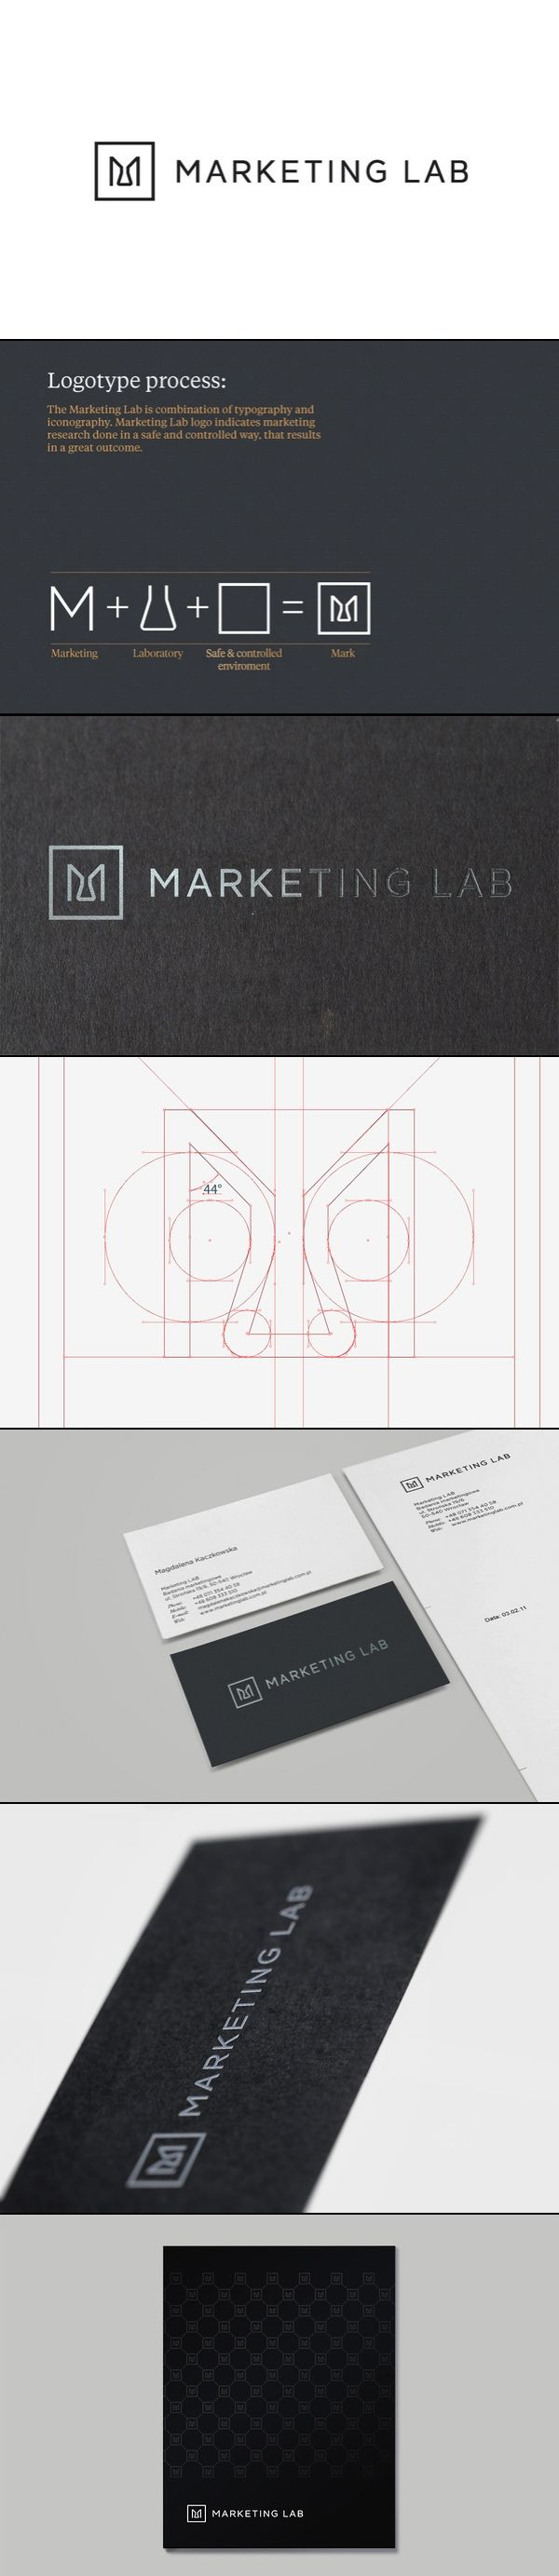 Marketing Lab | #corporate #branding #creative #logo #personalized #identity #design #corporatedesign < repinned by www.BlickeDeeler.de | Have a look on www.LogoGestaltung-Hamburg.de